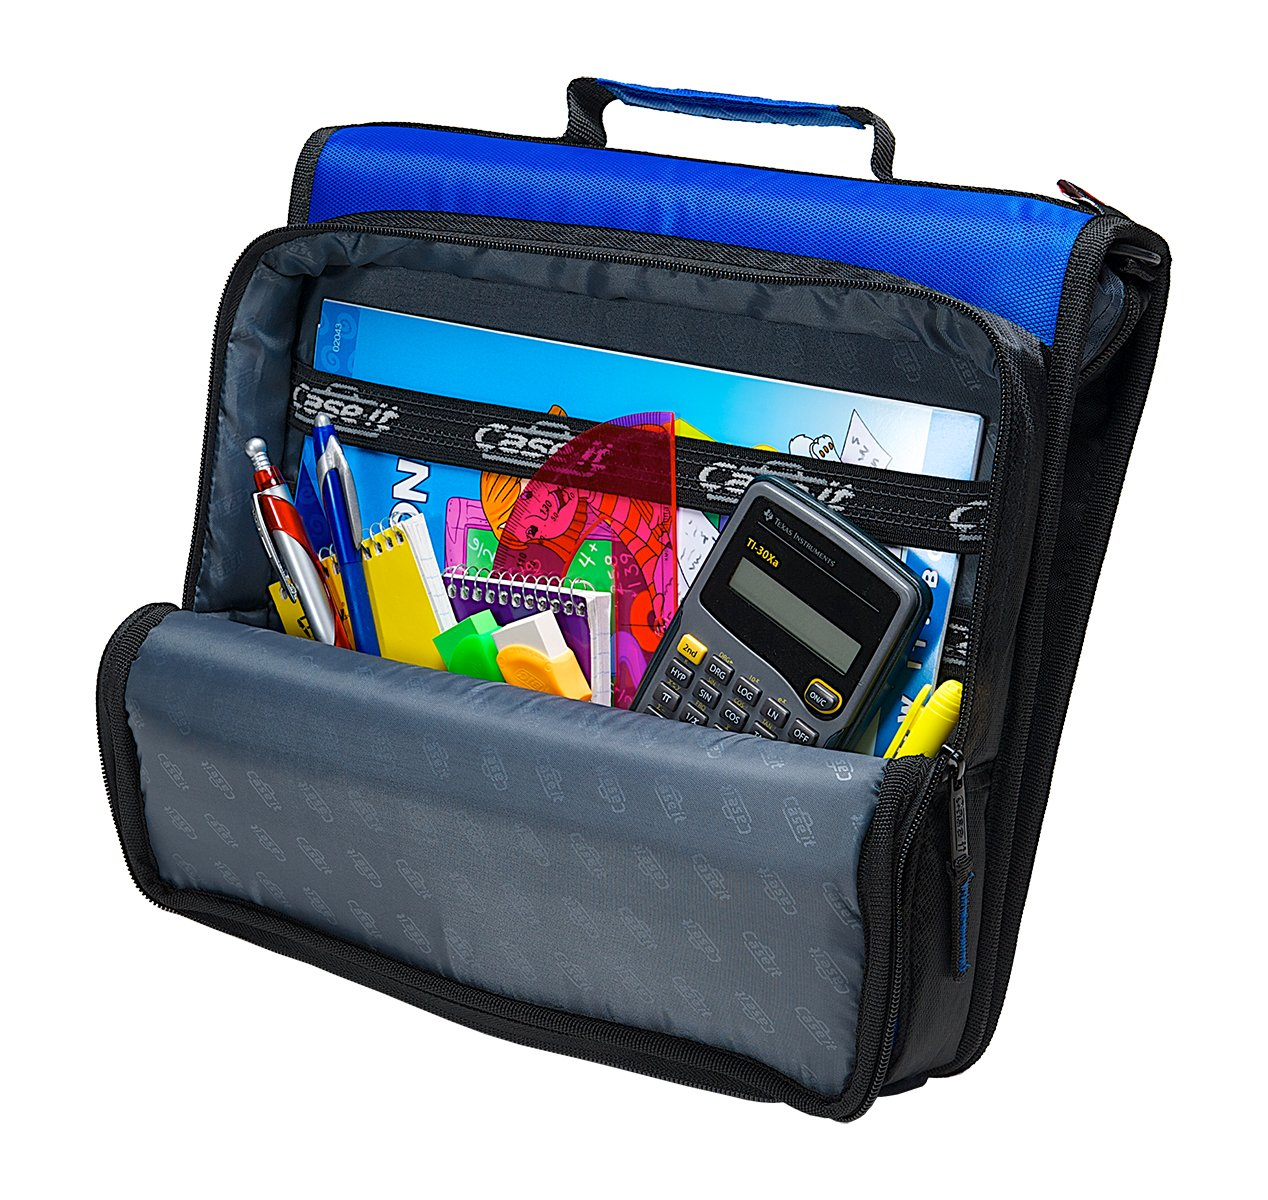 Case-it 2-Inch Universal 2-Inch Case-it 3-Ring Zipper Binder, Holds 13 Inch Laptop, Negro, LT-007-BLK 94c9c3